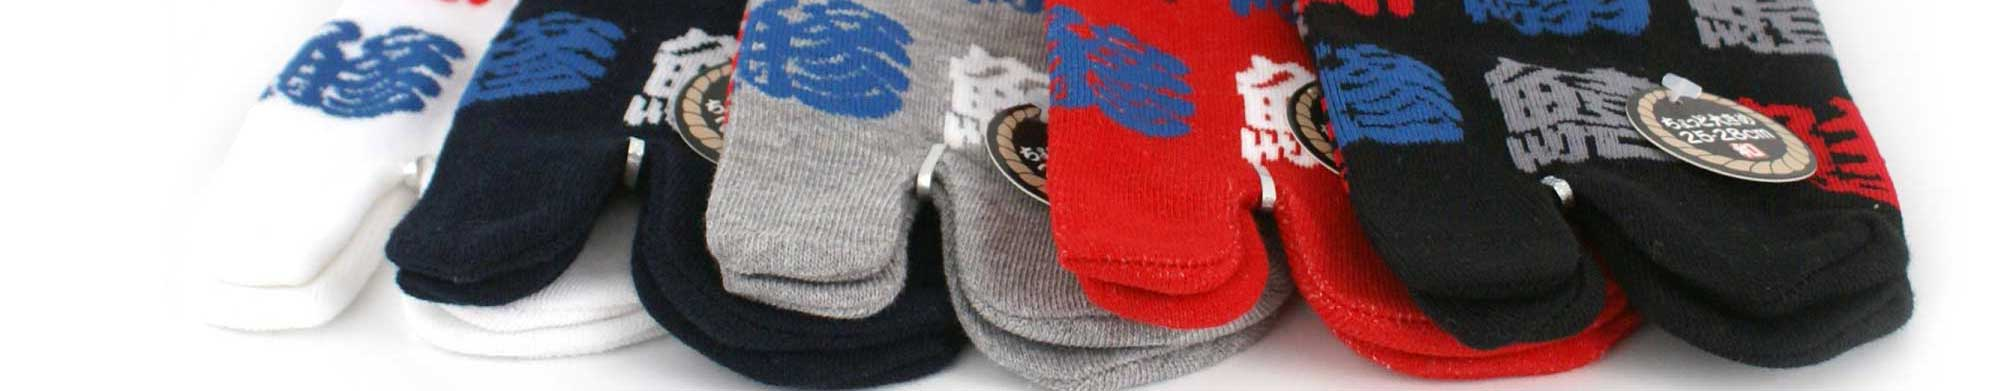 pair of socks made in Japan